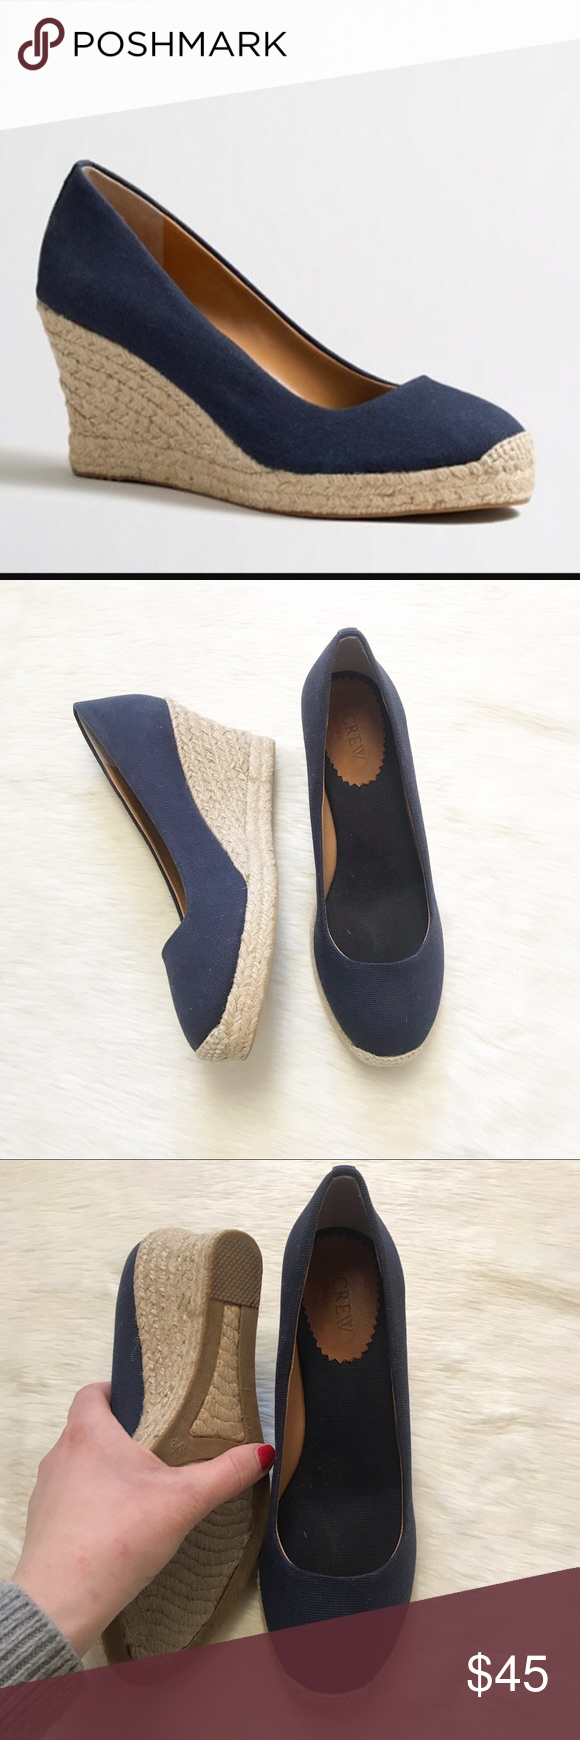 f4650876501 J Crew Seville Canvas Navy Espadrille Wedge Slipon Navy canvas slip on Espadrille  Wedges from J. Crew Factory in a size 8.5. These shoes are in very good ...